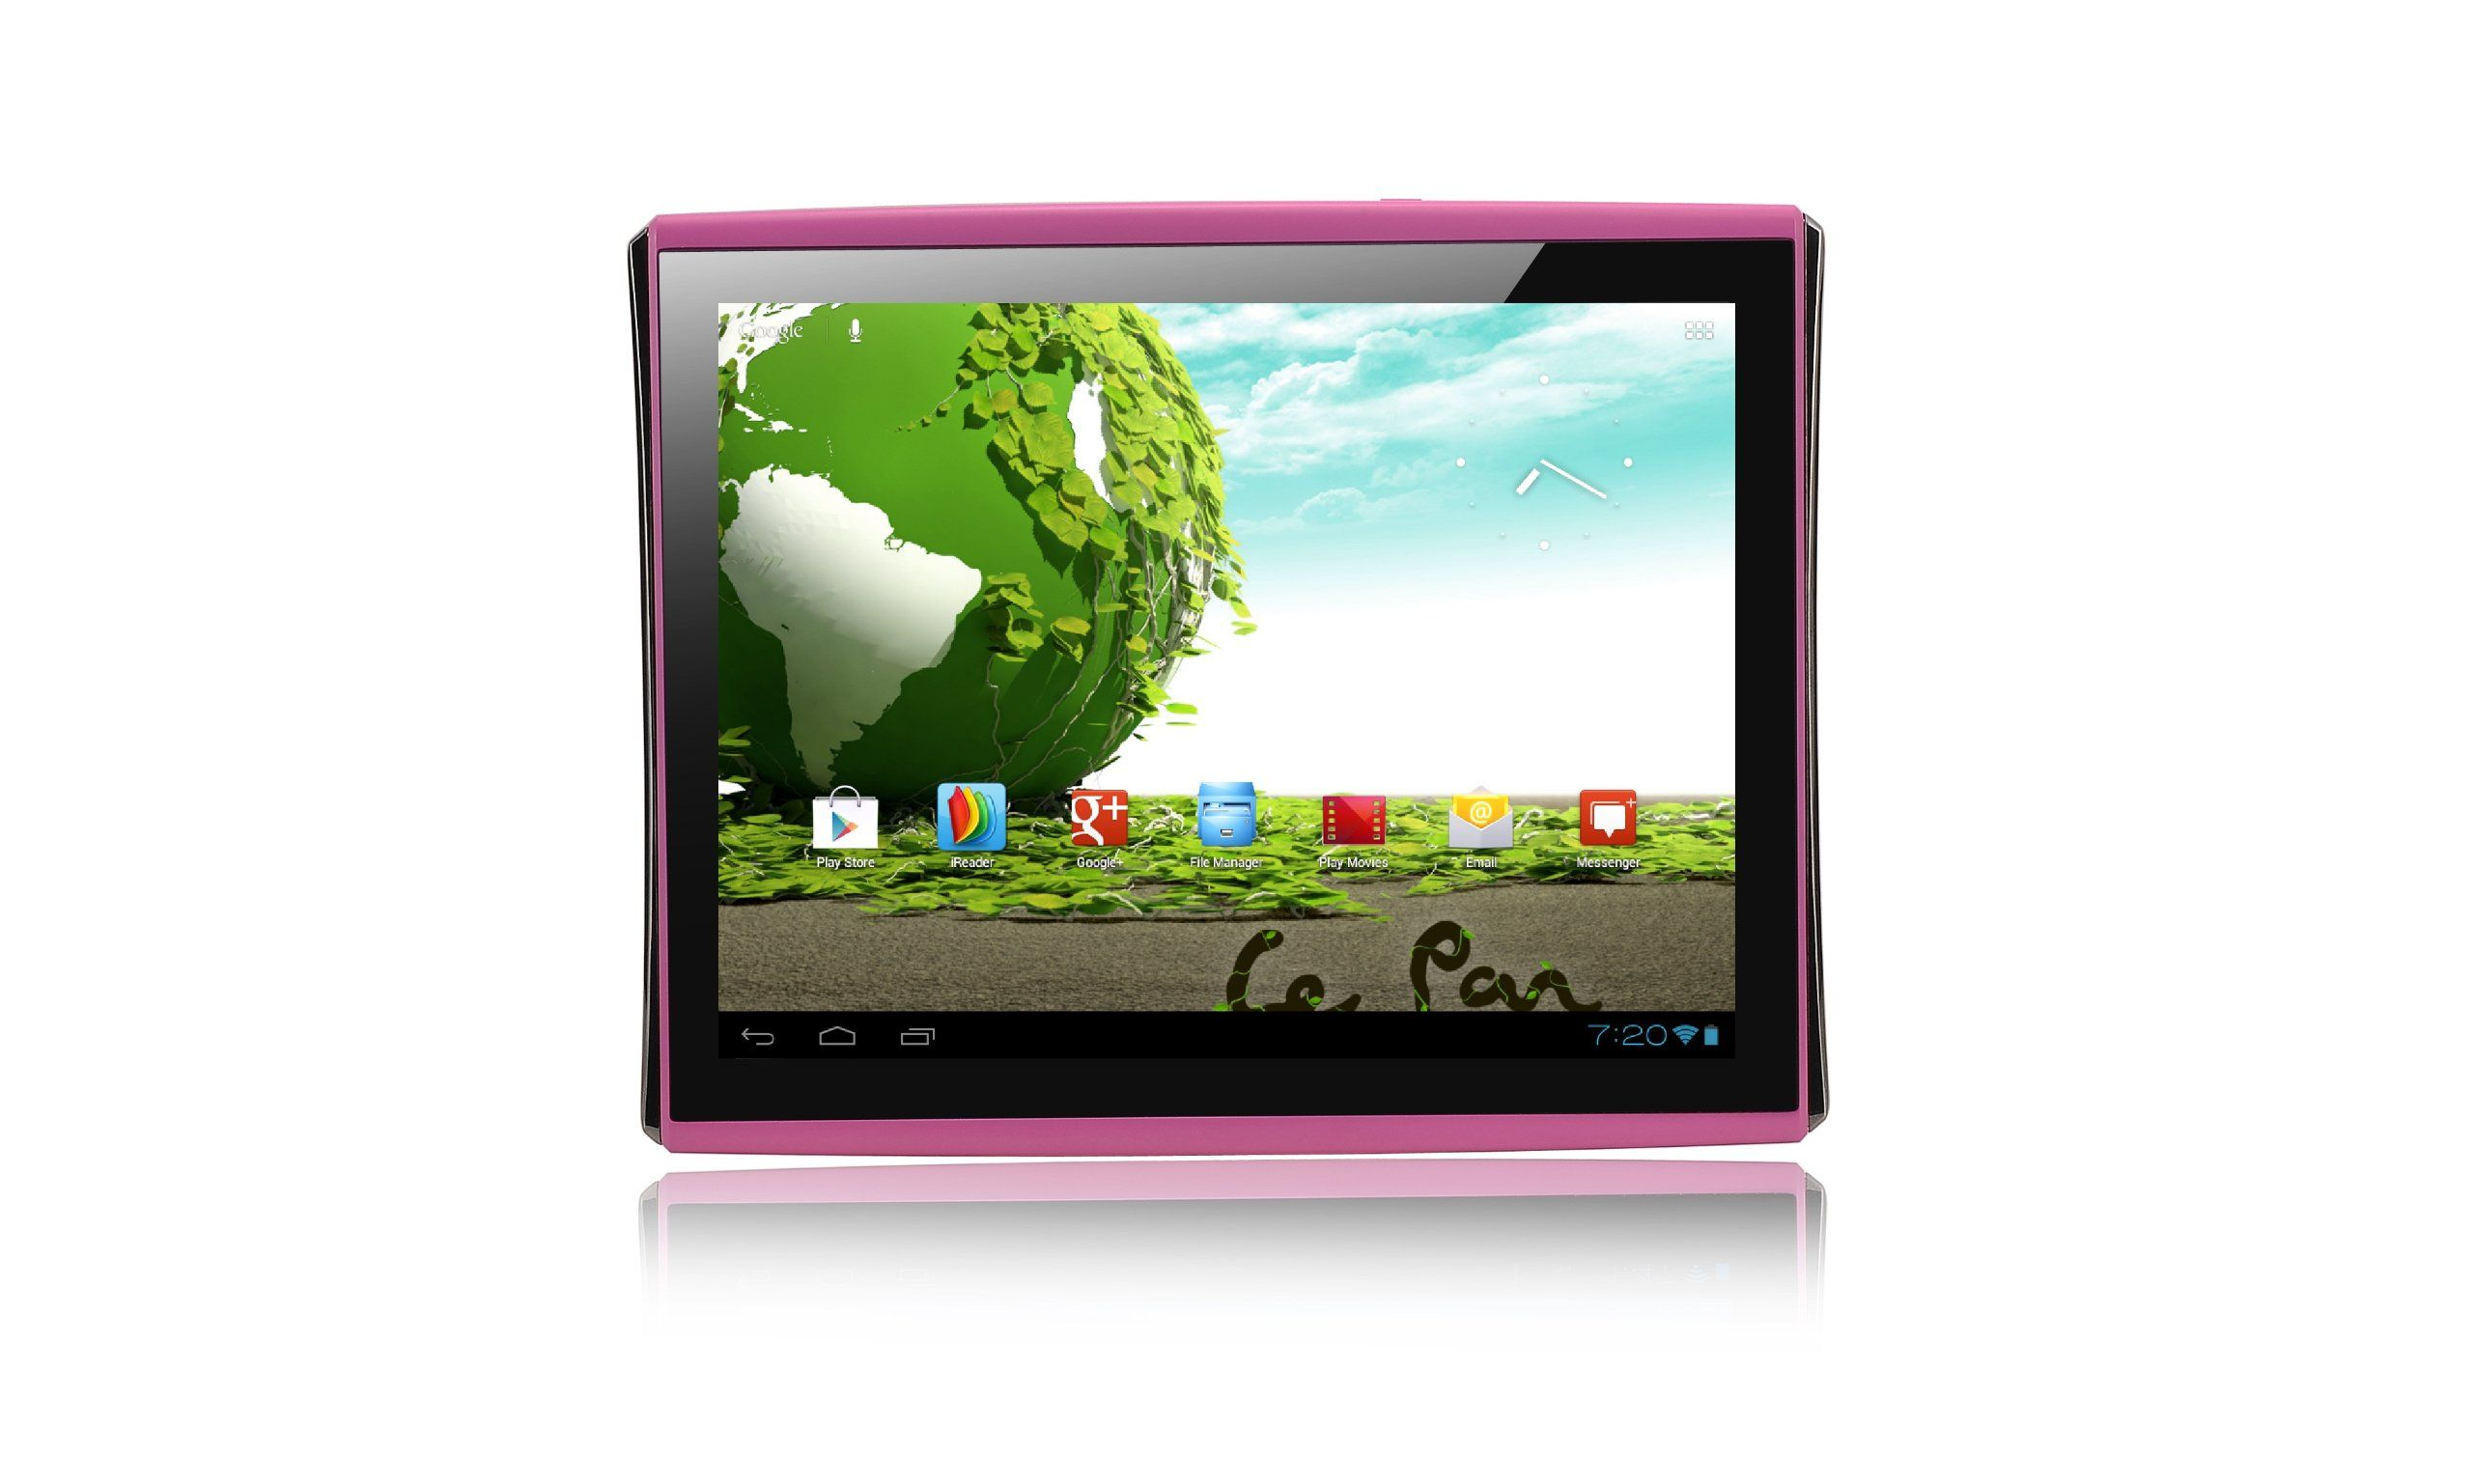 Le pan s pk 9 7 inch 4gb tablet pink android 4 0